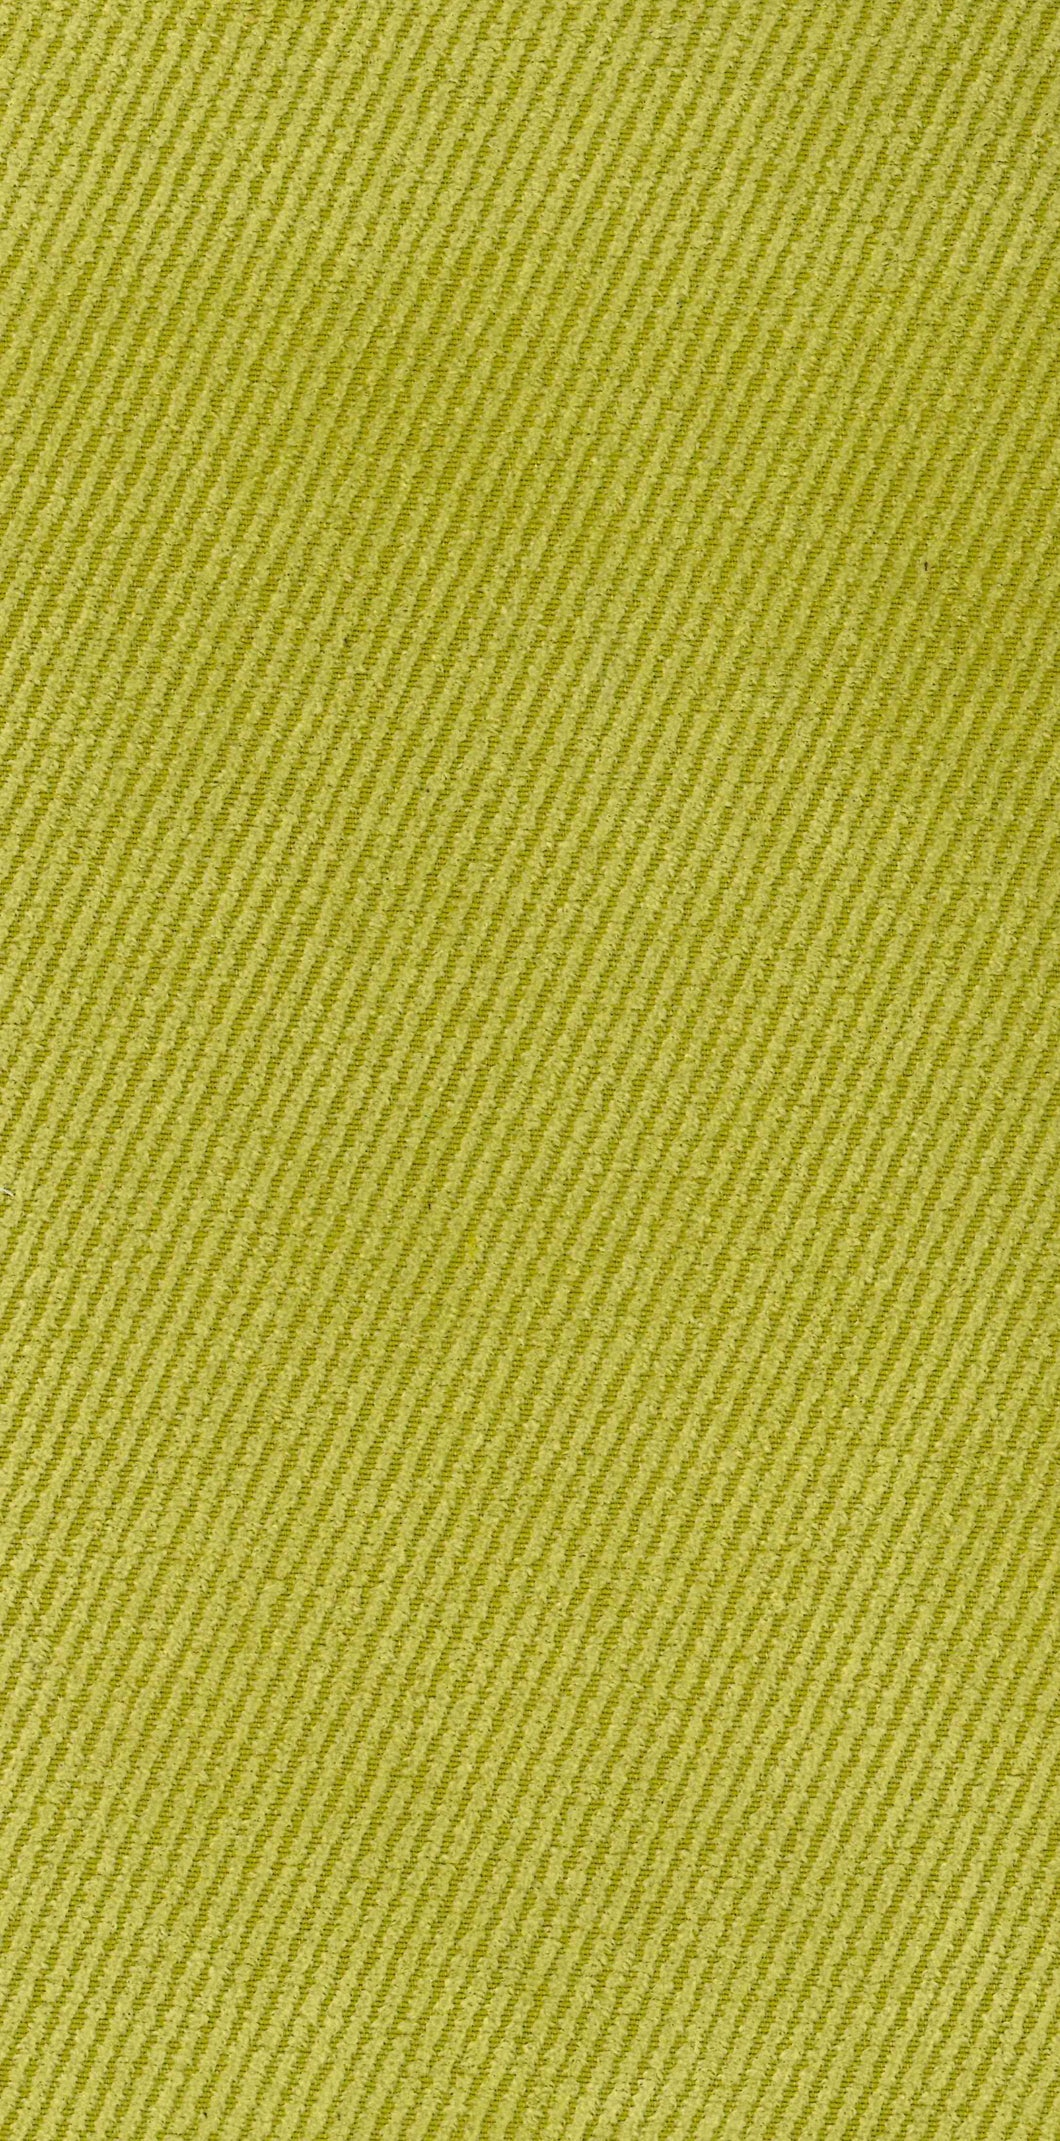 Twill Suede Lime